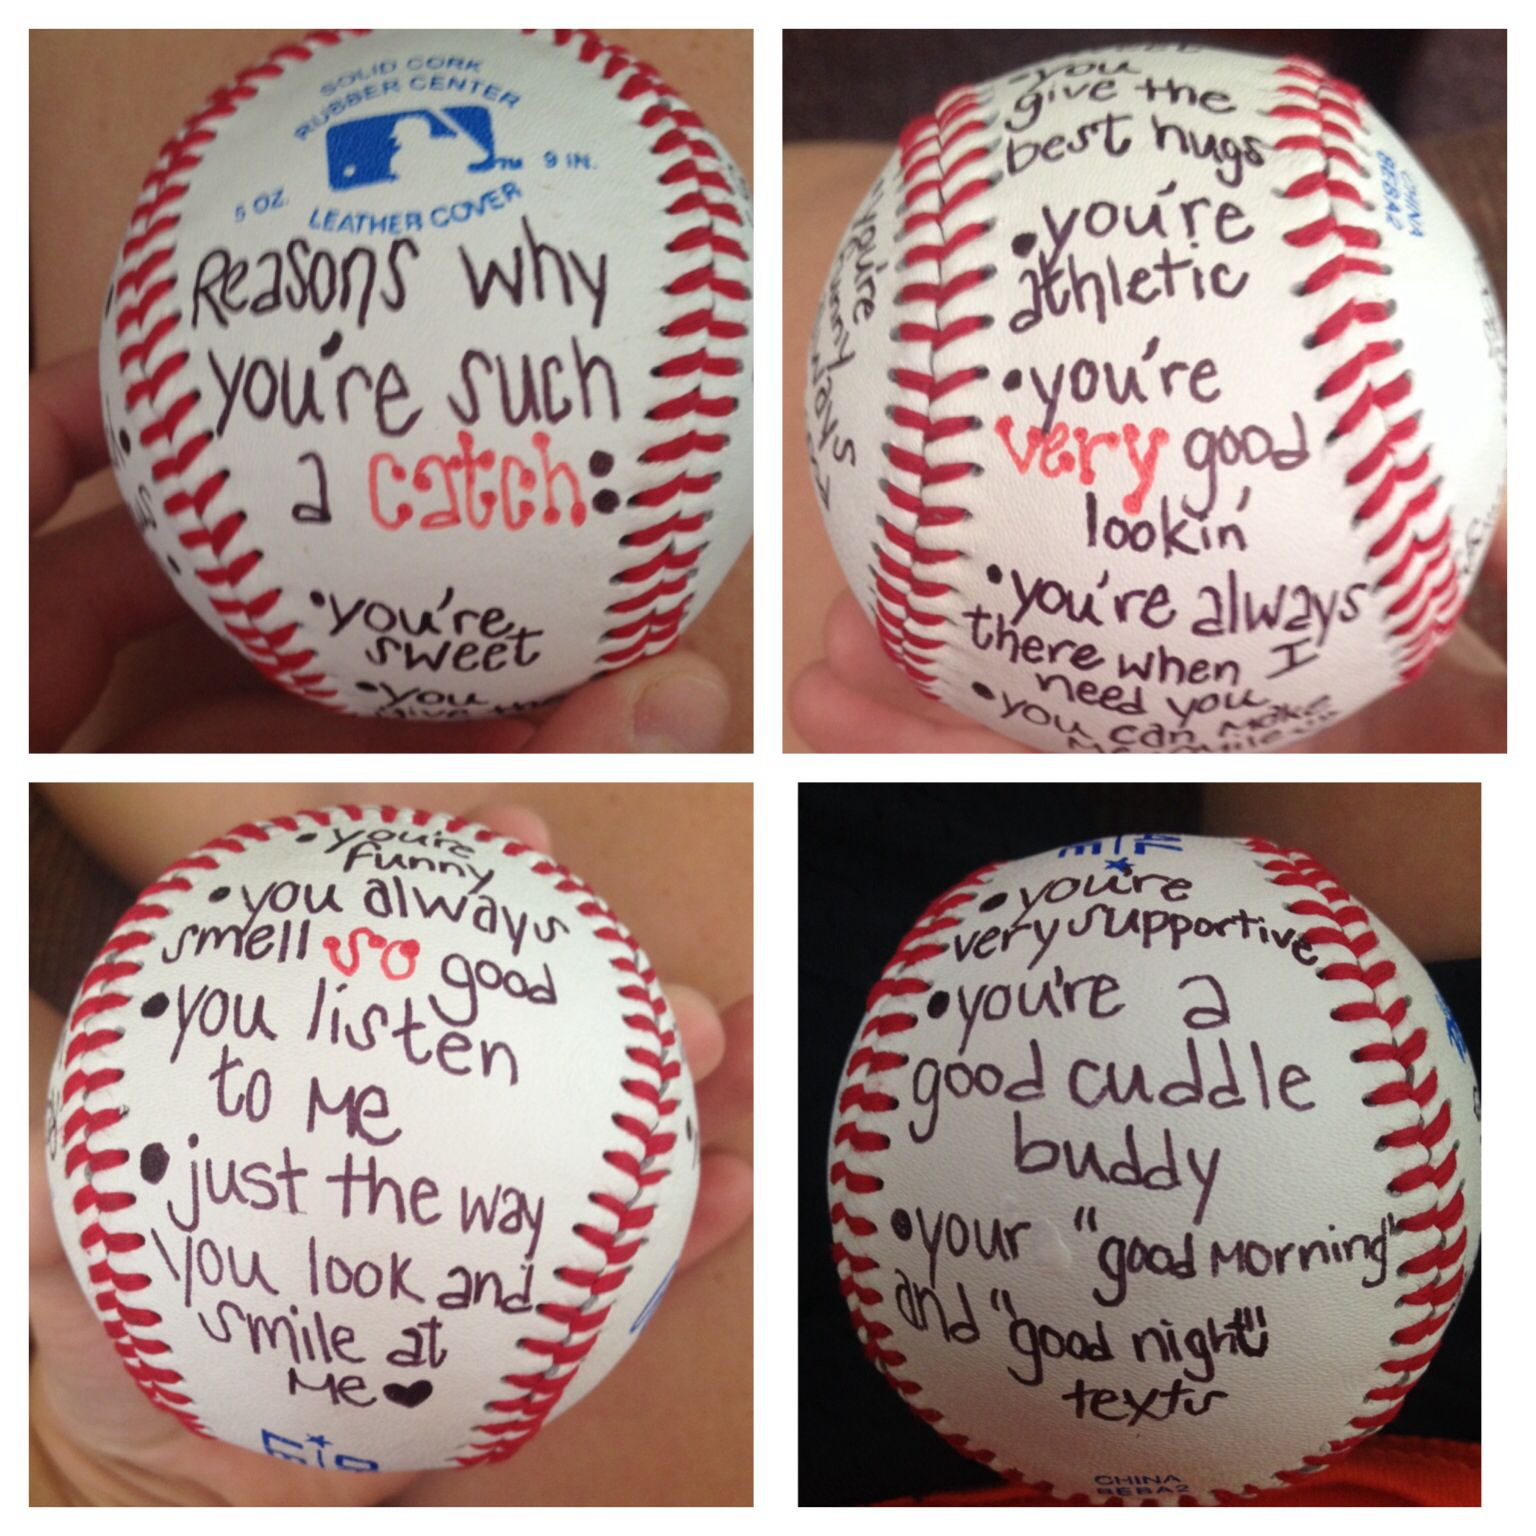 50 awesome valentines gifts for him baseball crafts Best valentine gifts for him